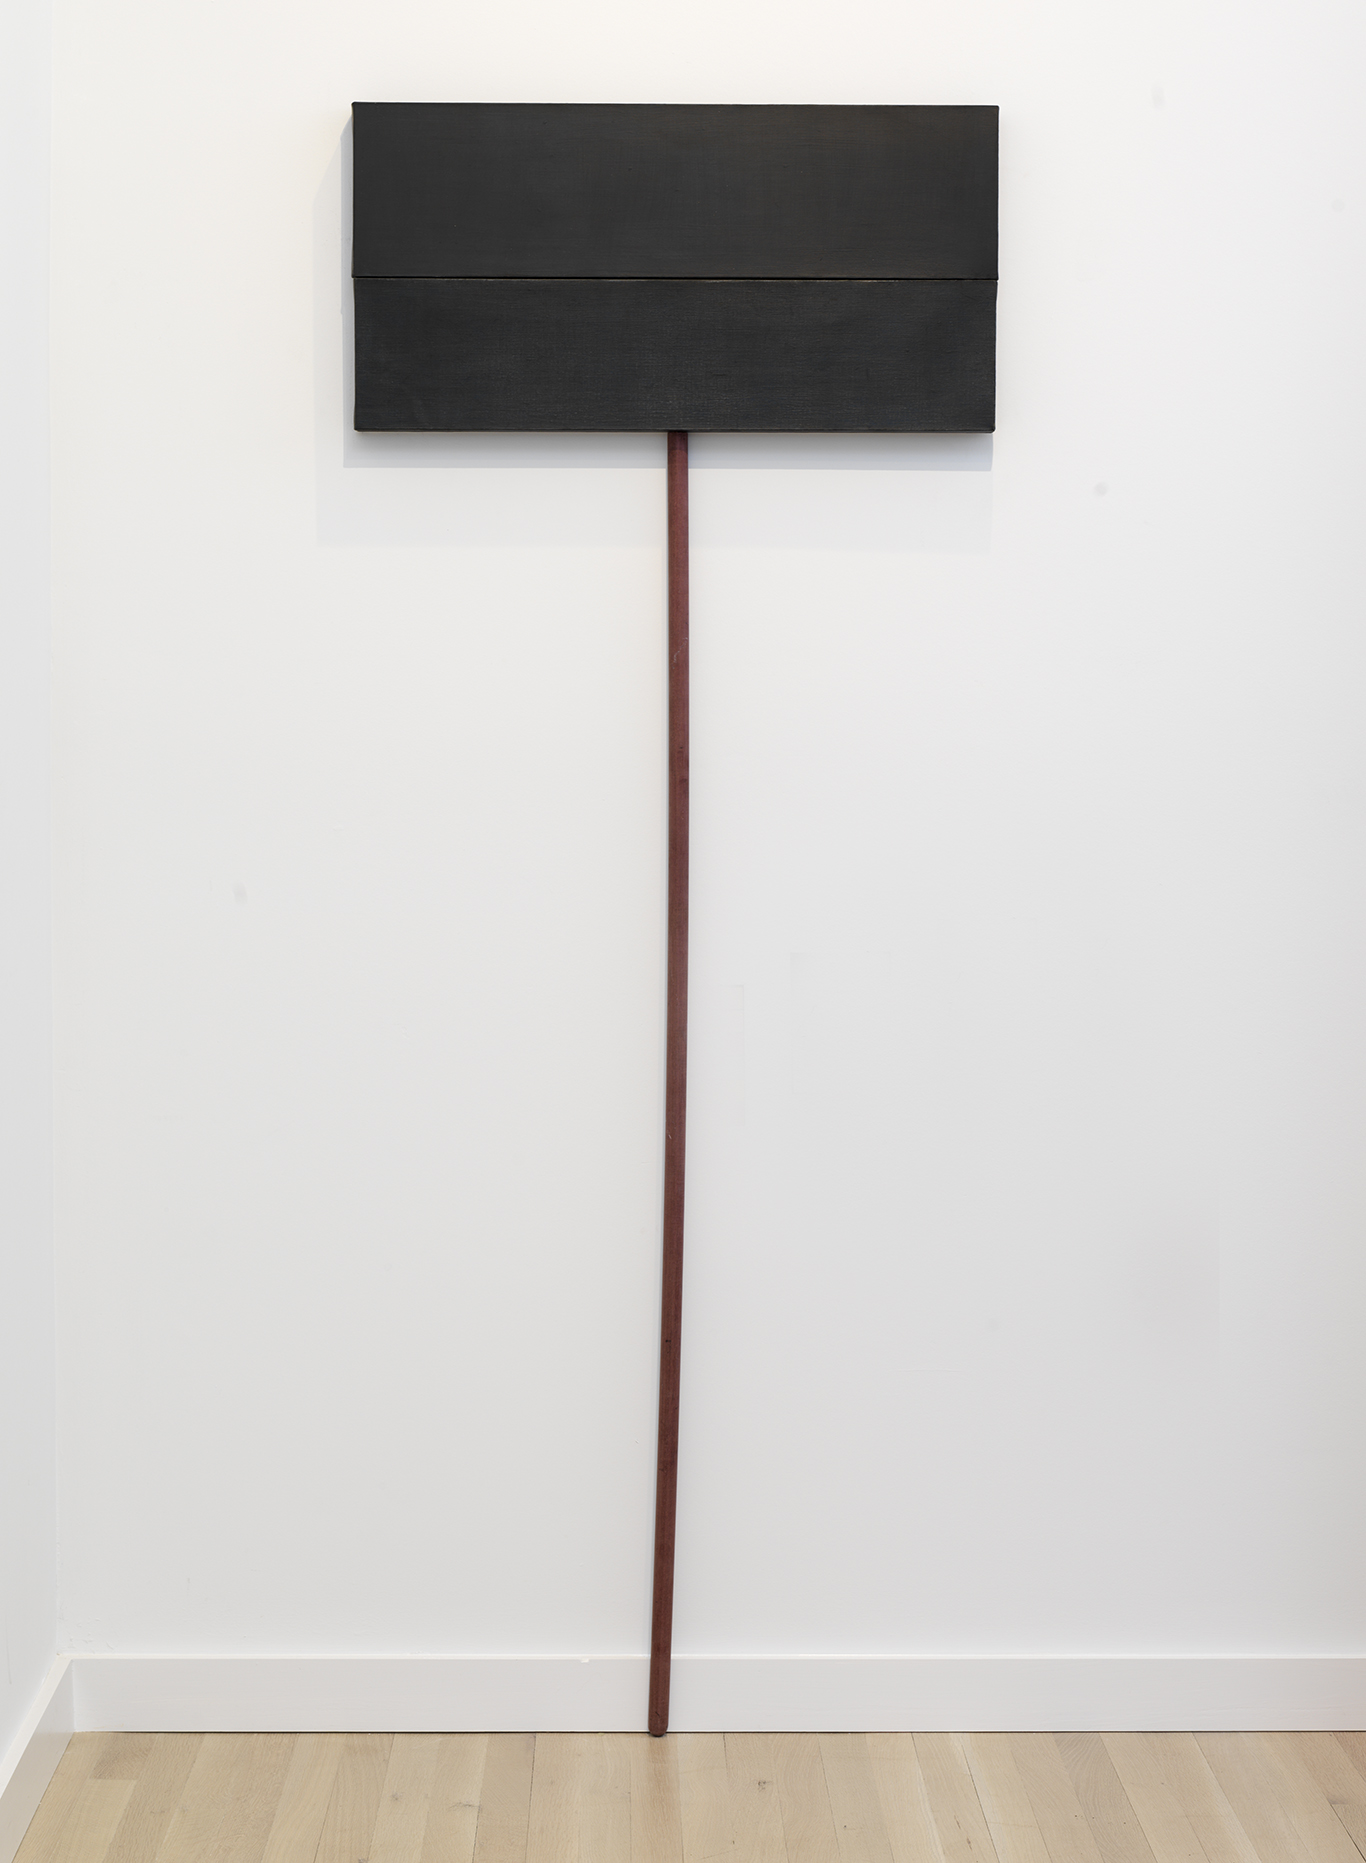 Denzil Hurley  Glyph Within, Without and About #9 , 2016-2018 Oil on canvas on stick 75 x 30 inches